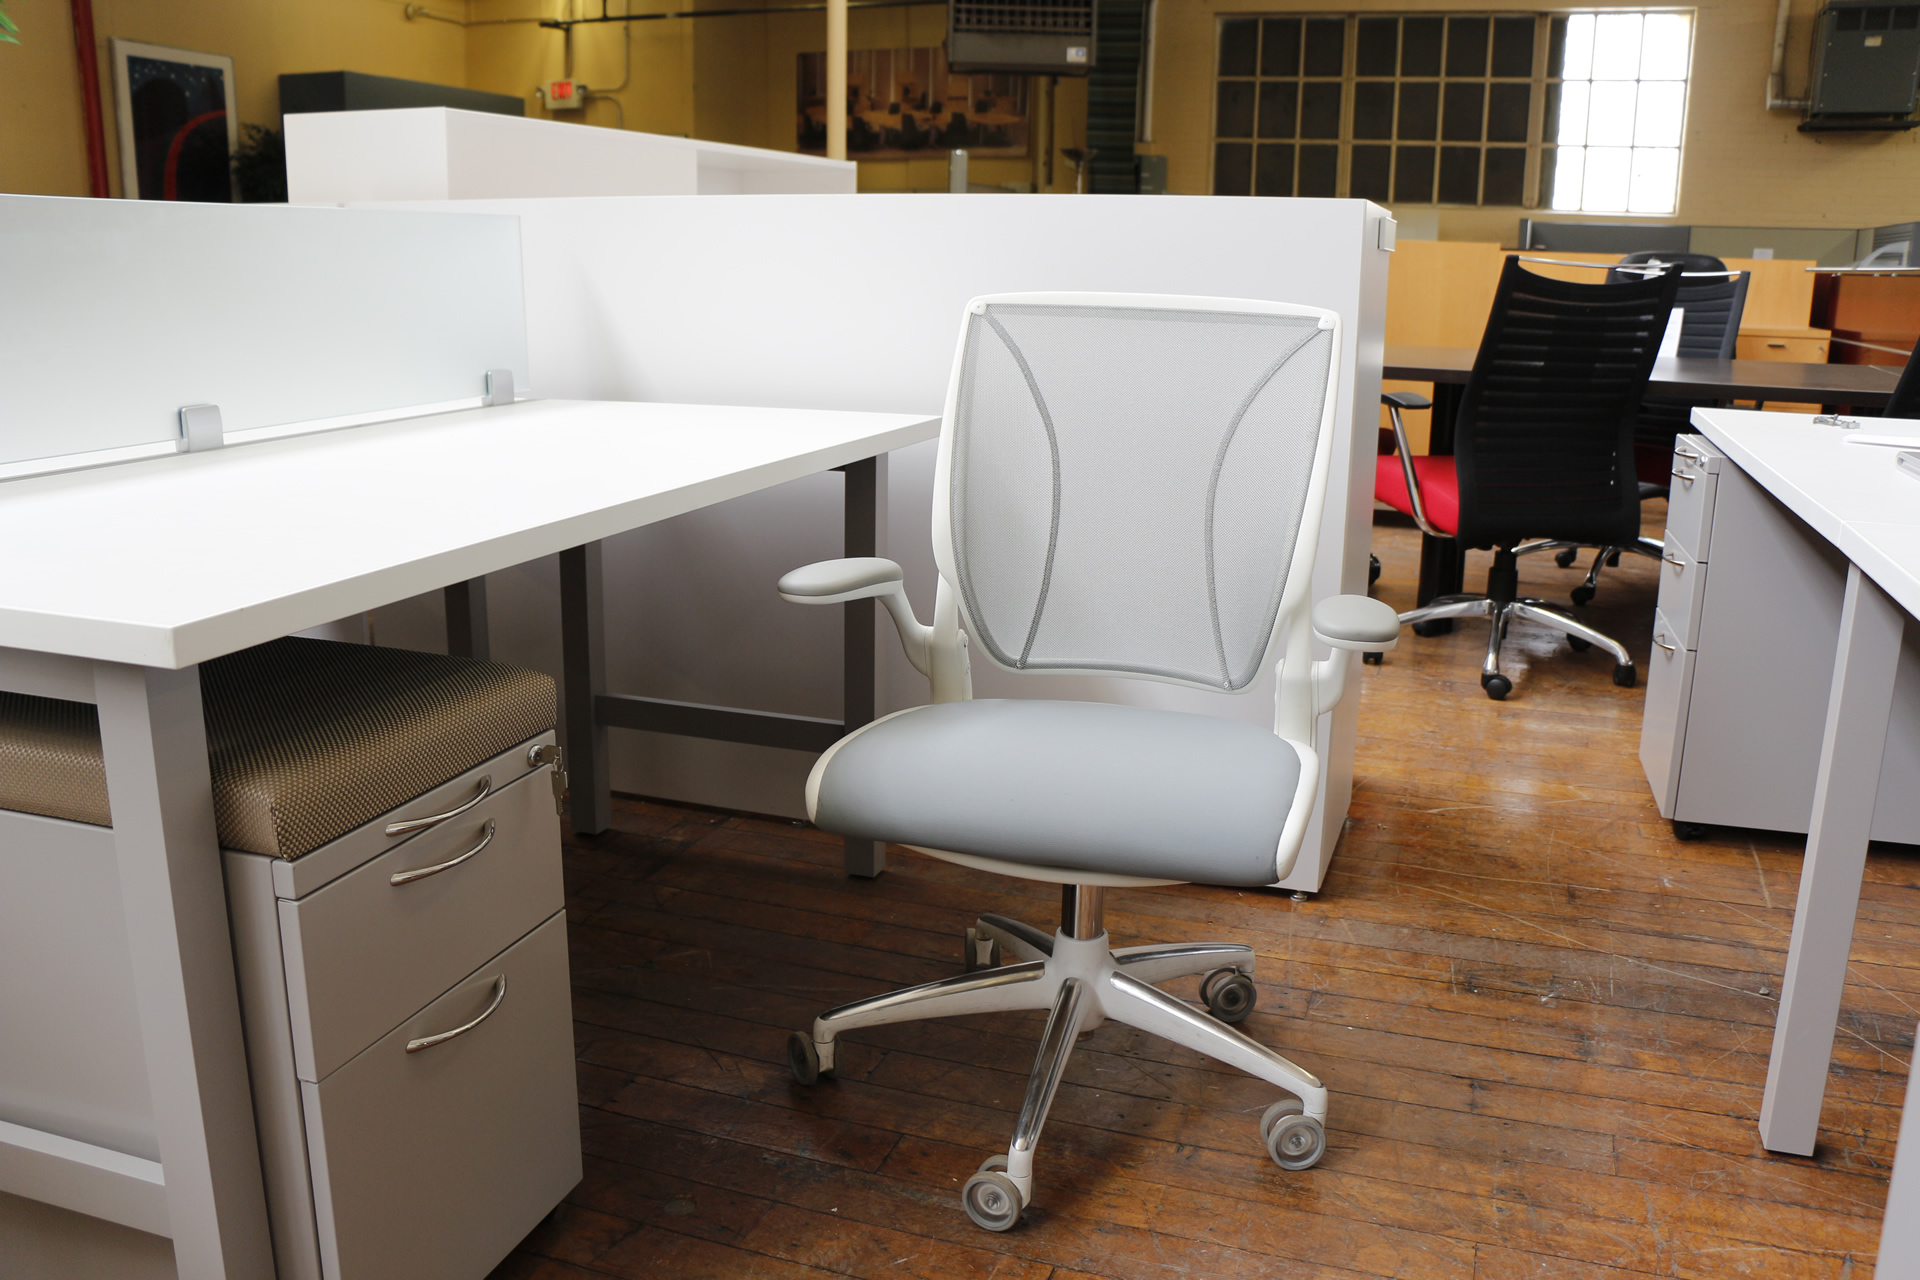 peartreeofficefurniture_peartreeofficefurniture_mg_5105.jpg